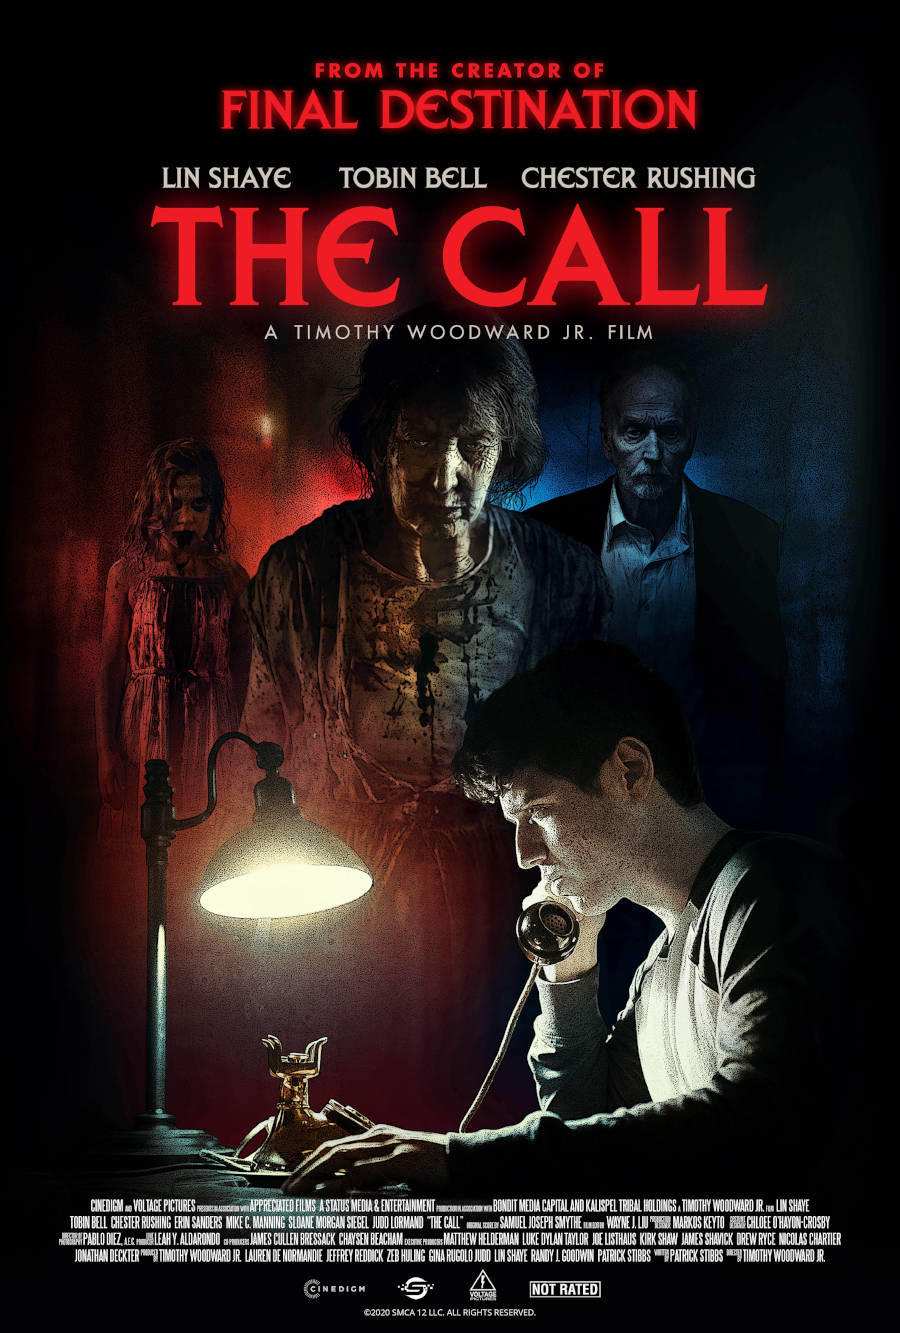 The Call poster art